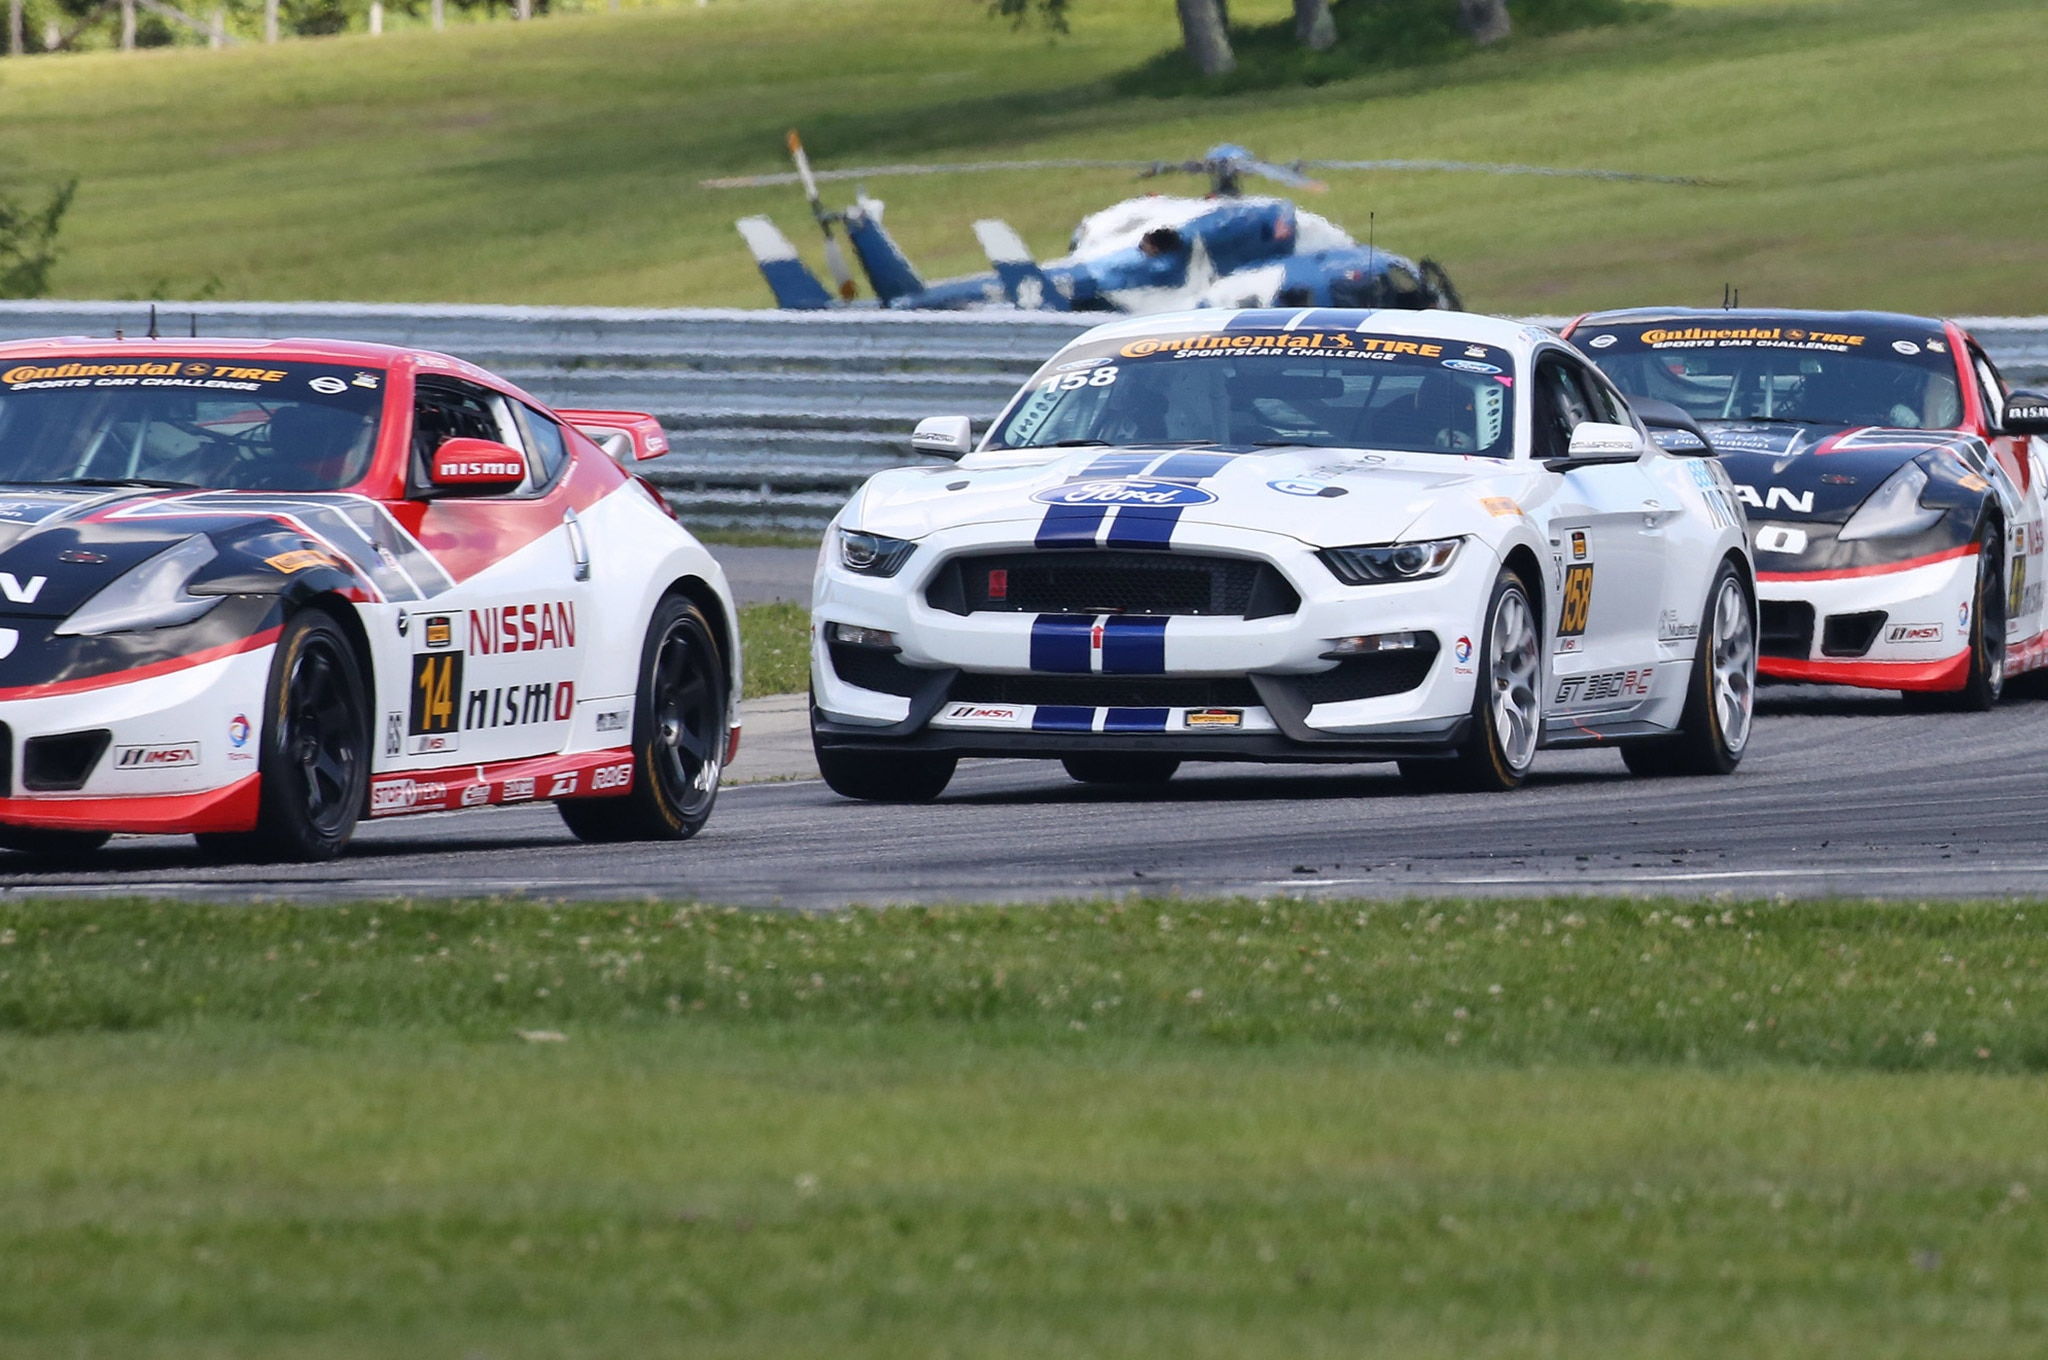 Shelby Gt350r C Takes Second Win At Lime Rock 04